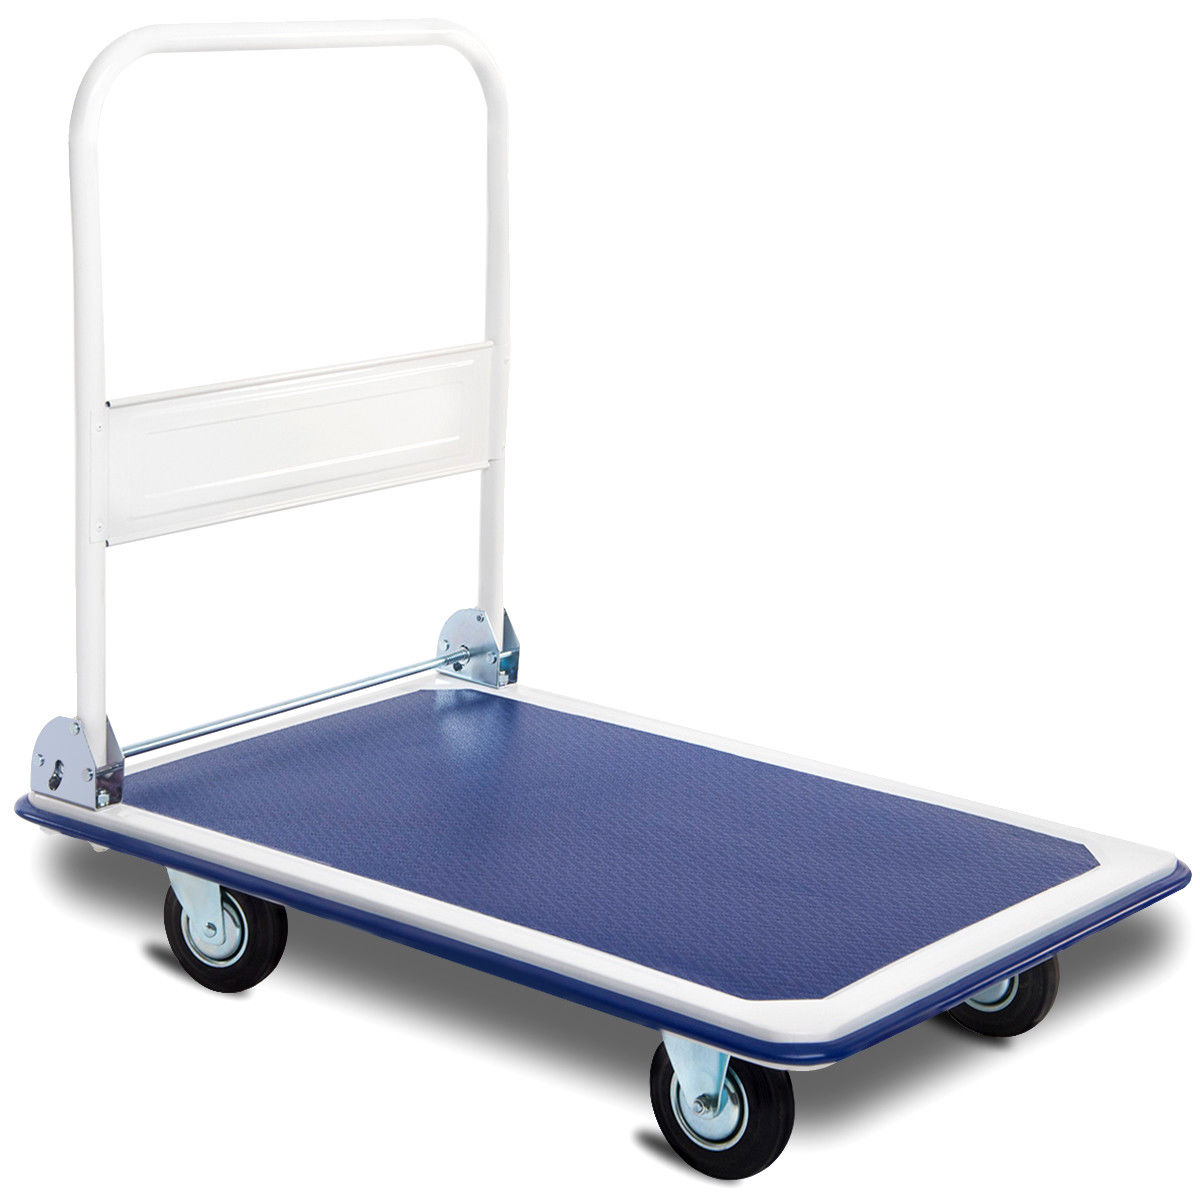 Costway 660lbs Platform Cart Dolly Folding Foldable Moving Warehouse Push Hand Truck by Costway